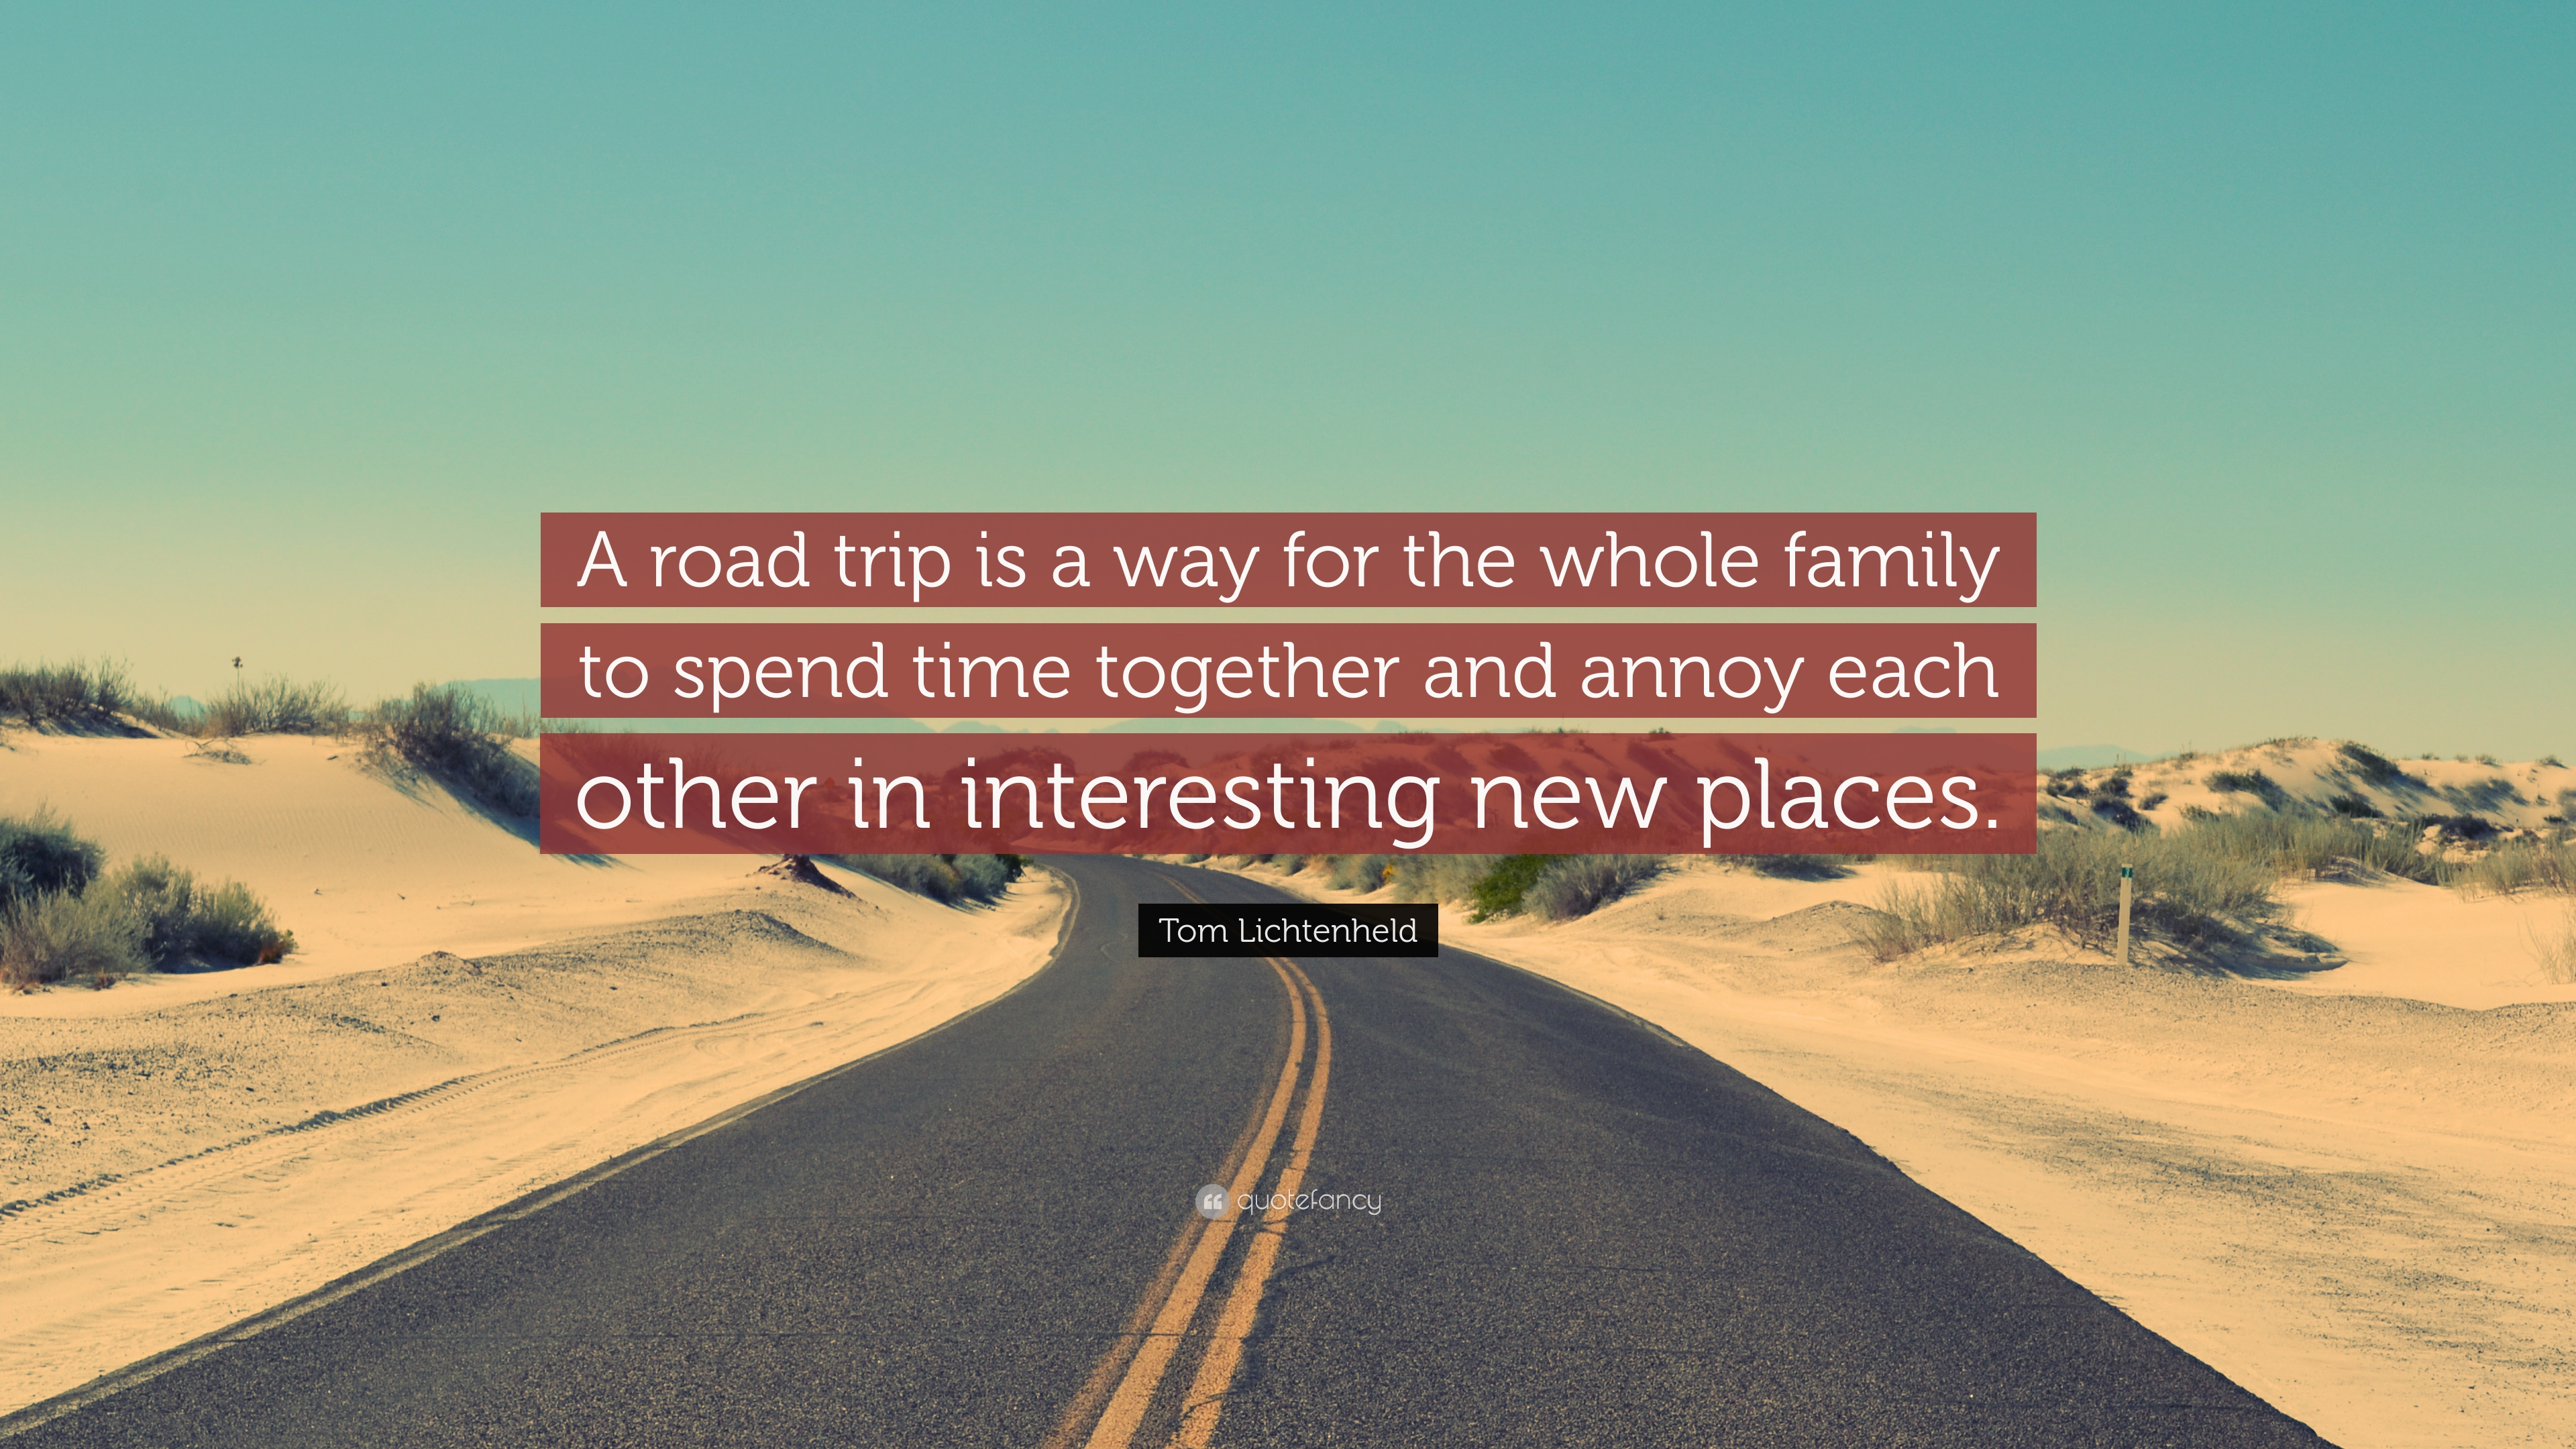 Tom Lichtenheld Quote A Road Trip Is A Way For The Whole Family To Spend Time Together And Annoy Each Other In Interesting New Places 9 Wallpapers Quotefancy